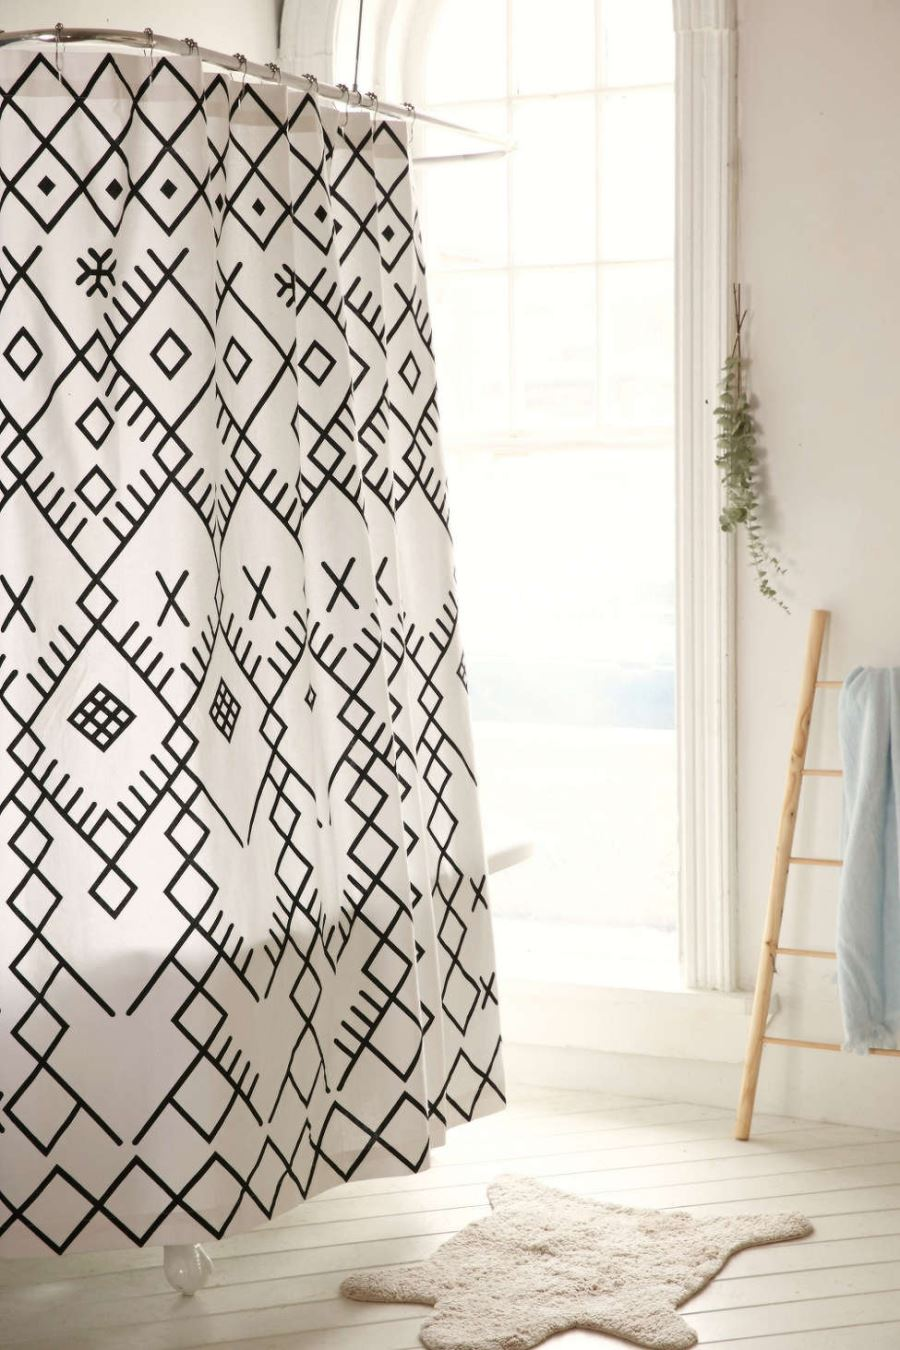 The Latest In Shower Curtain Trends